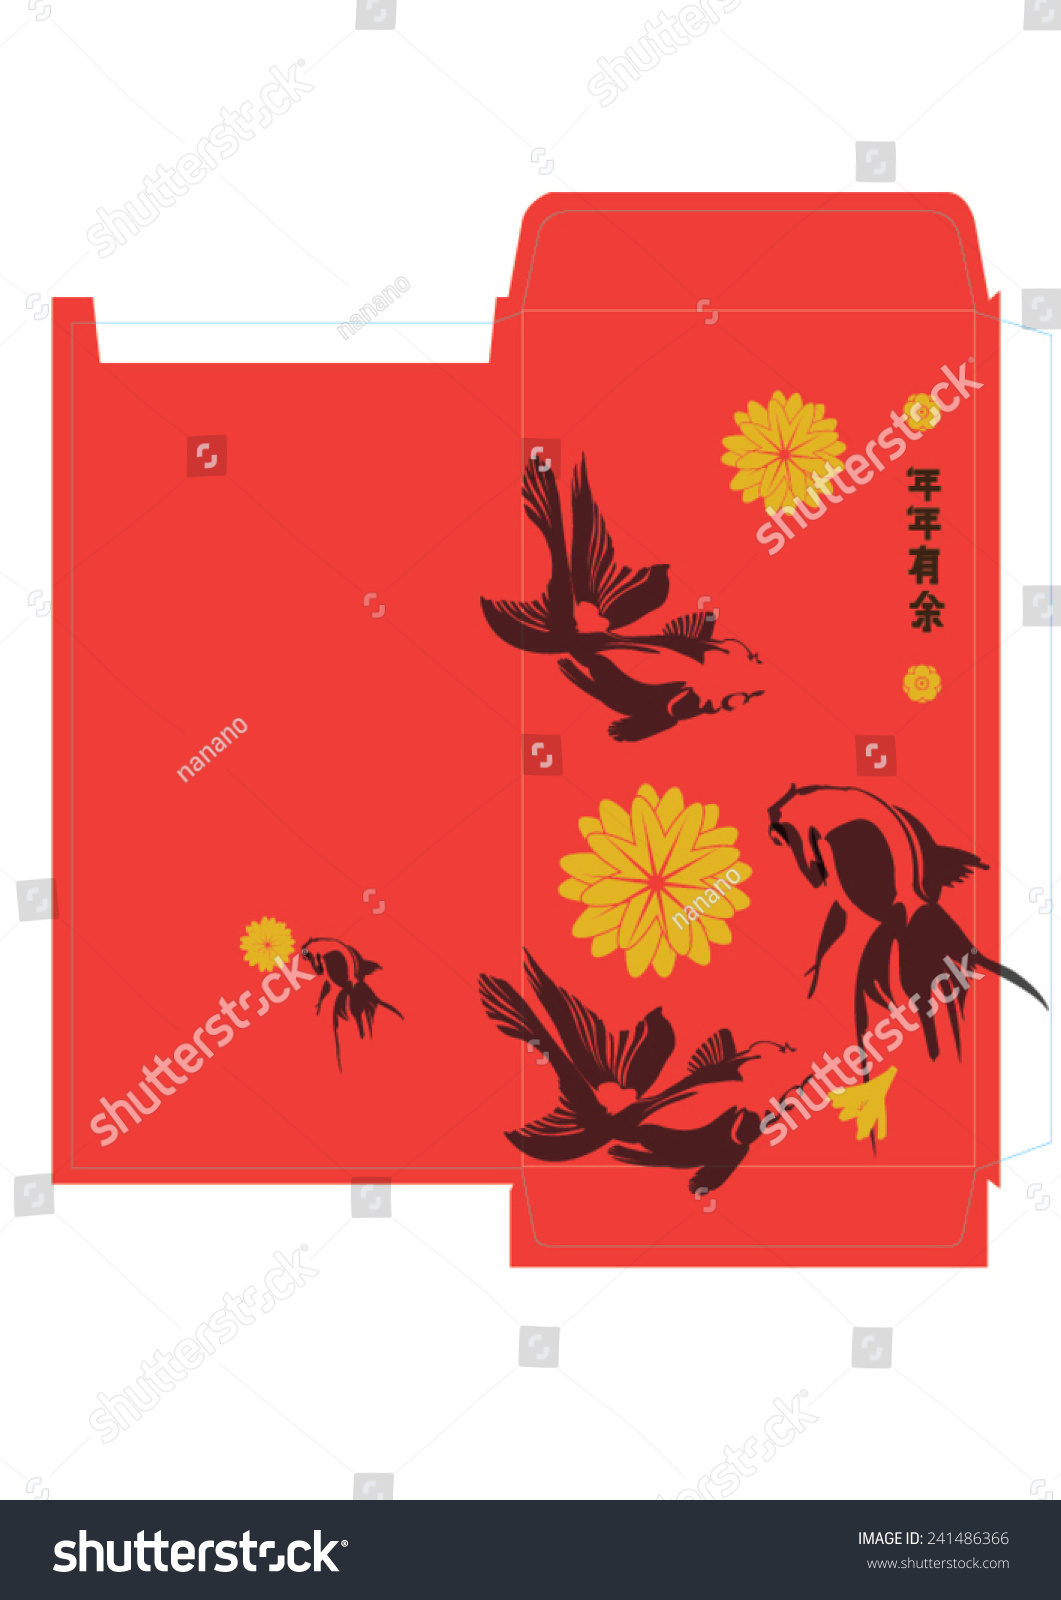 Happy chinese new year 2015 greetings stock vector 241486366 happy chinese new year 2015 greetings vector design translation wishing you a prosperous new kristyandbryce Choice Image